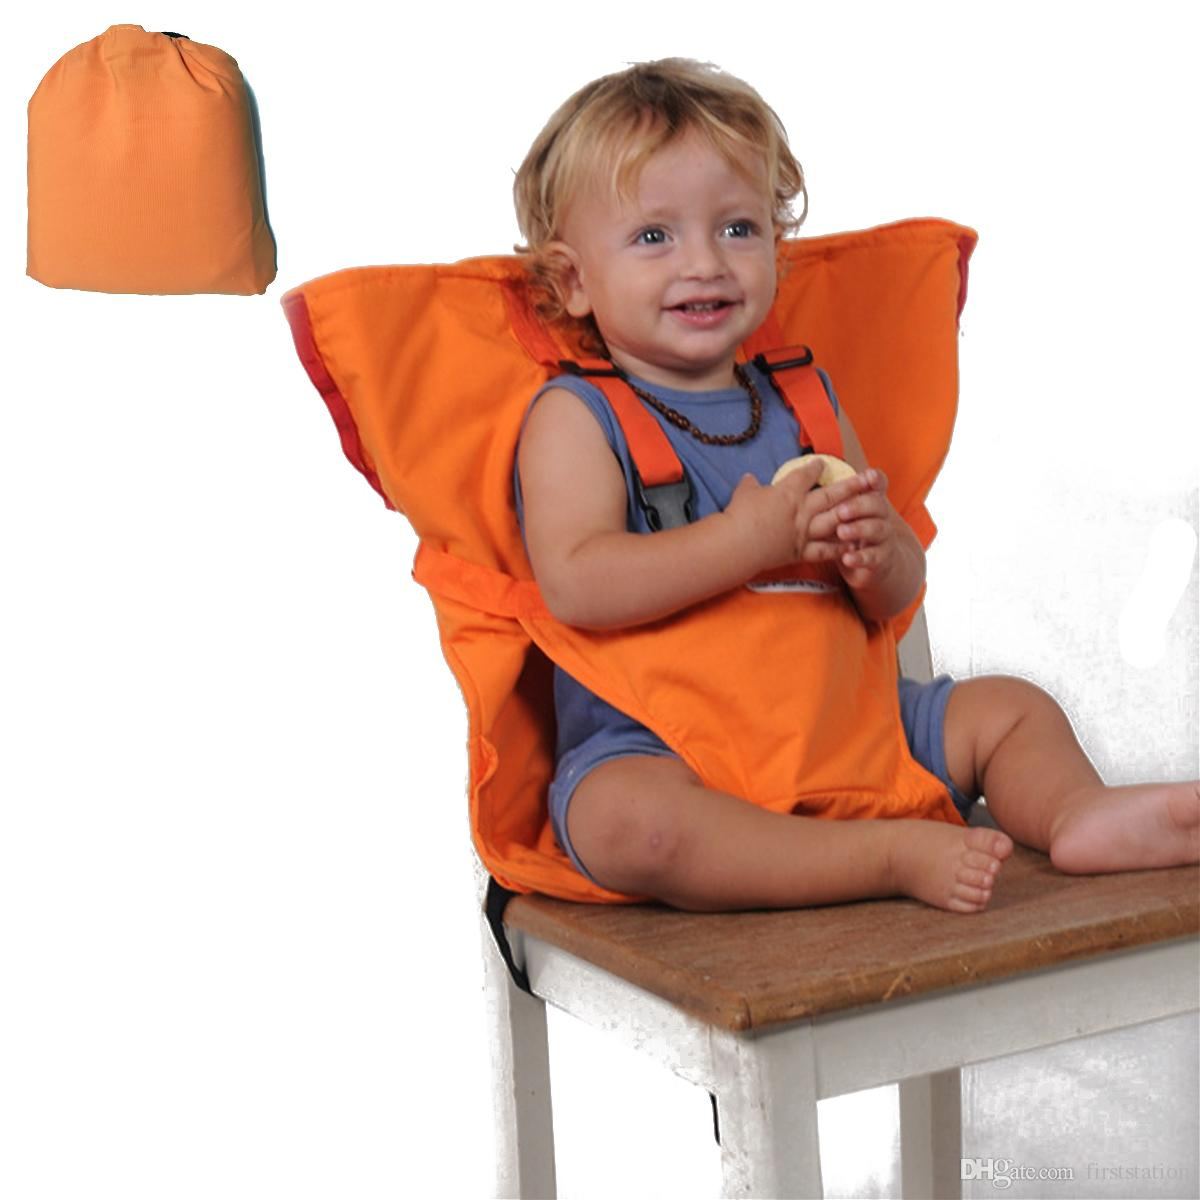 Baby High Chair Feeding Booster Safety Seat Harness Cover Sack Cushion Bag,  Adjustable Portable Travel Washable Orange Belt For Kid Toddler Seat Covers  For ...